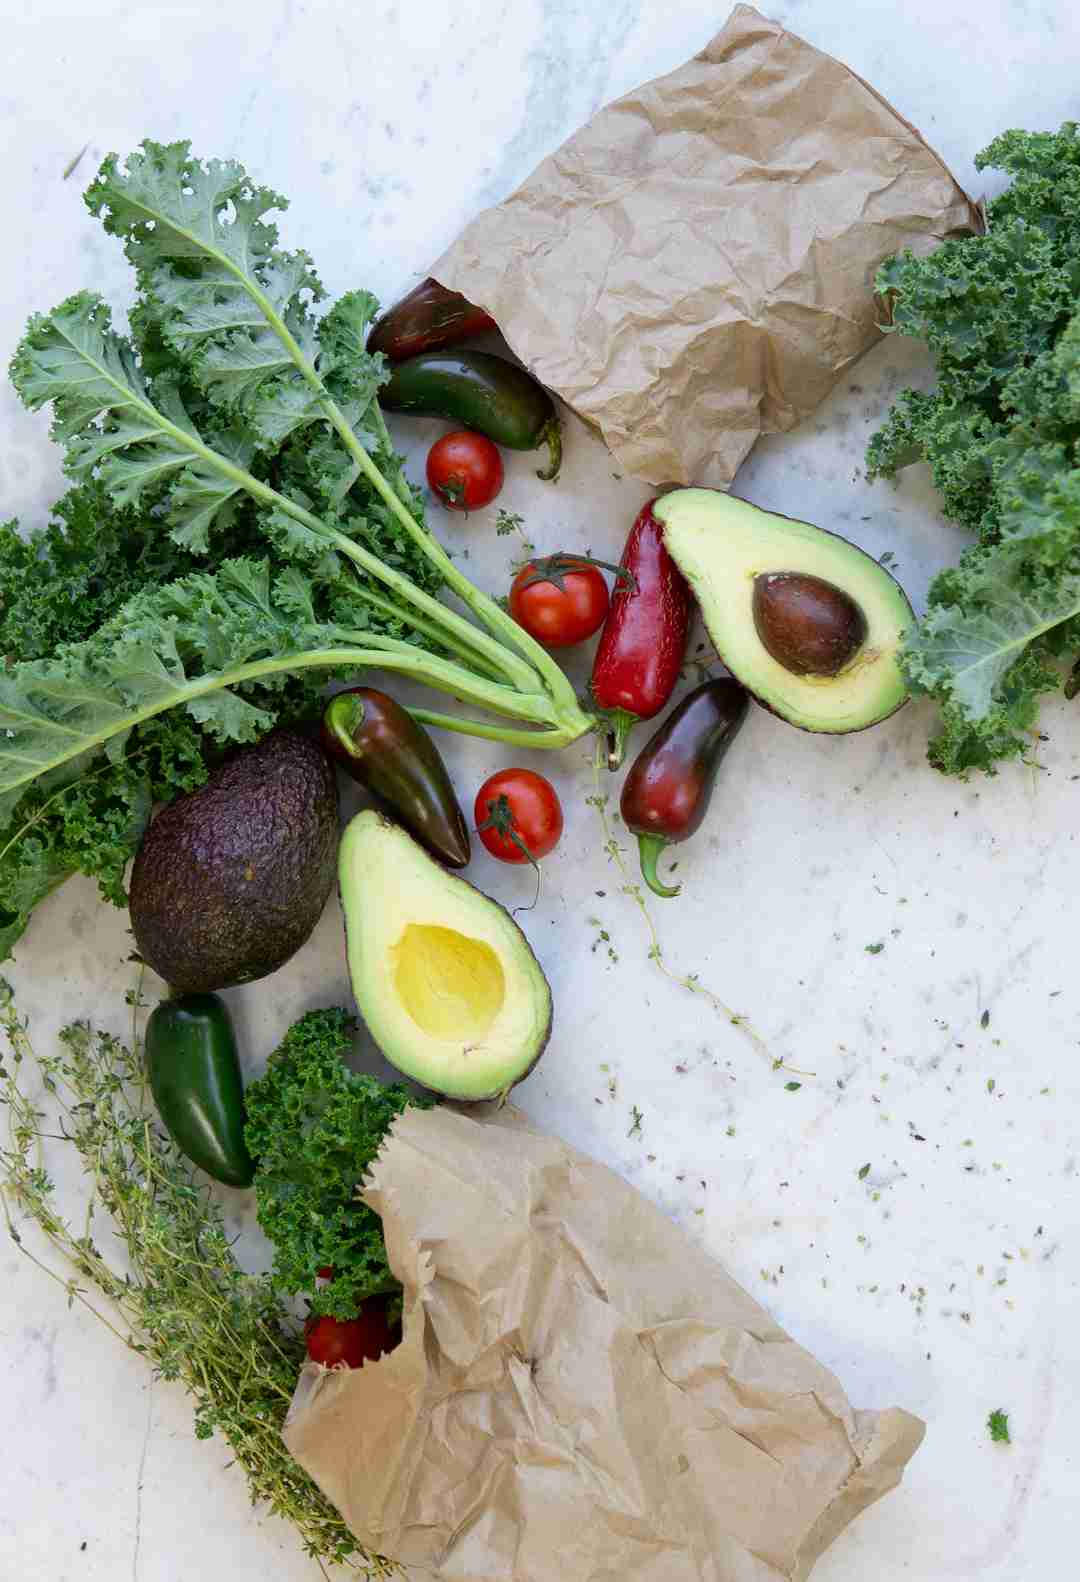 mindfulness coach and healthy foods